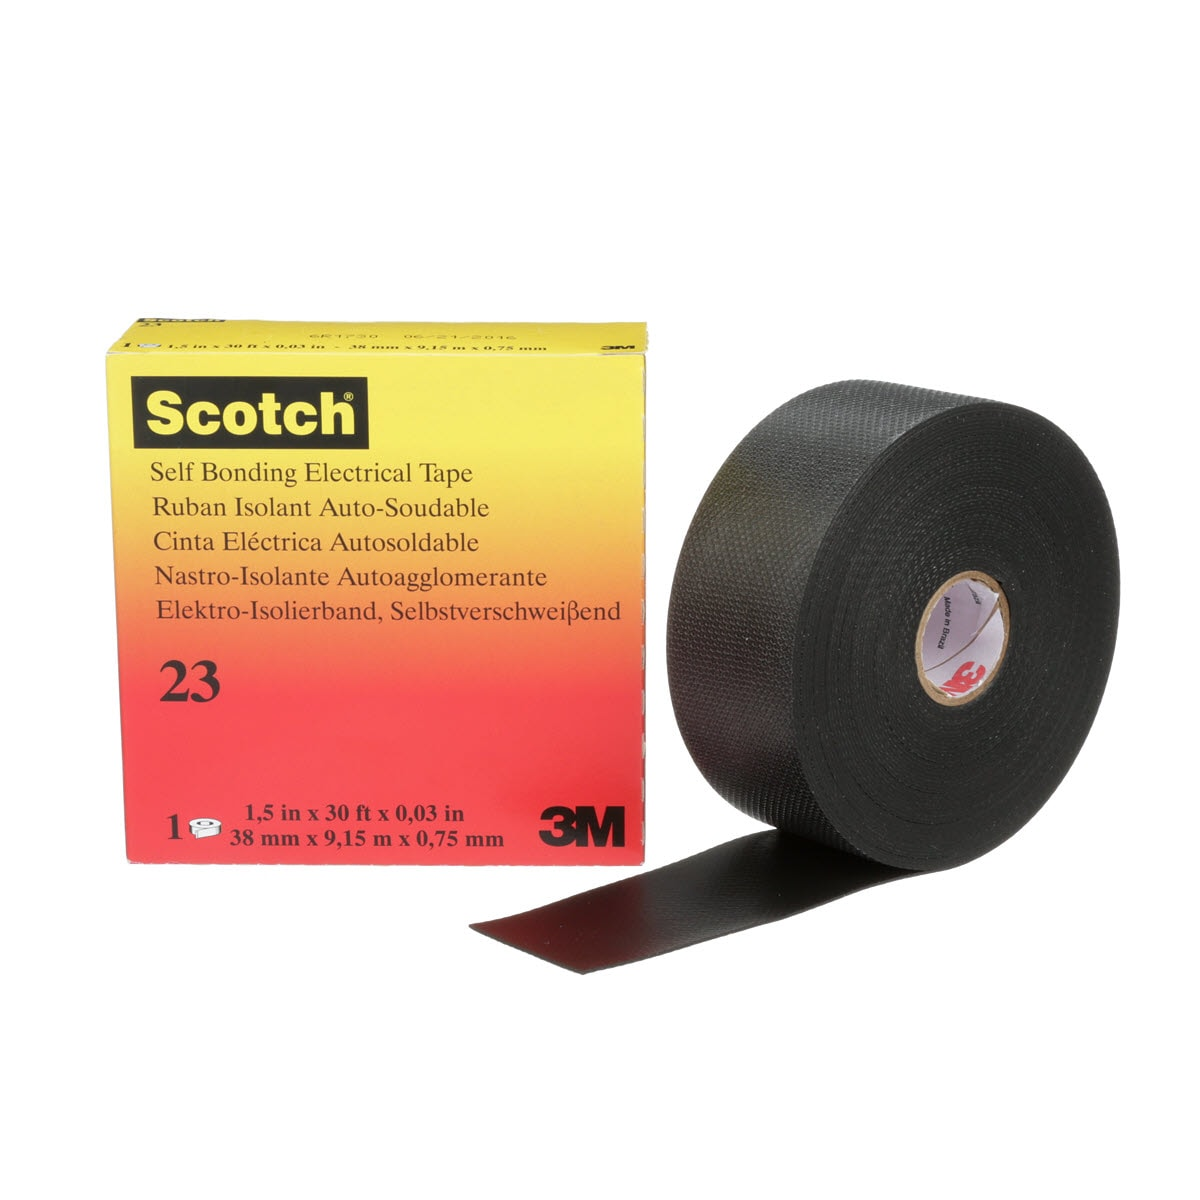 Splicing Tape Scotch Rubber Splicing Tape 23 Black With Liner 30 Mil 75 Mm